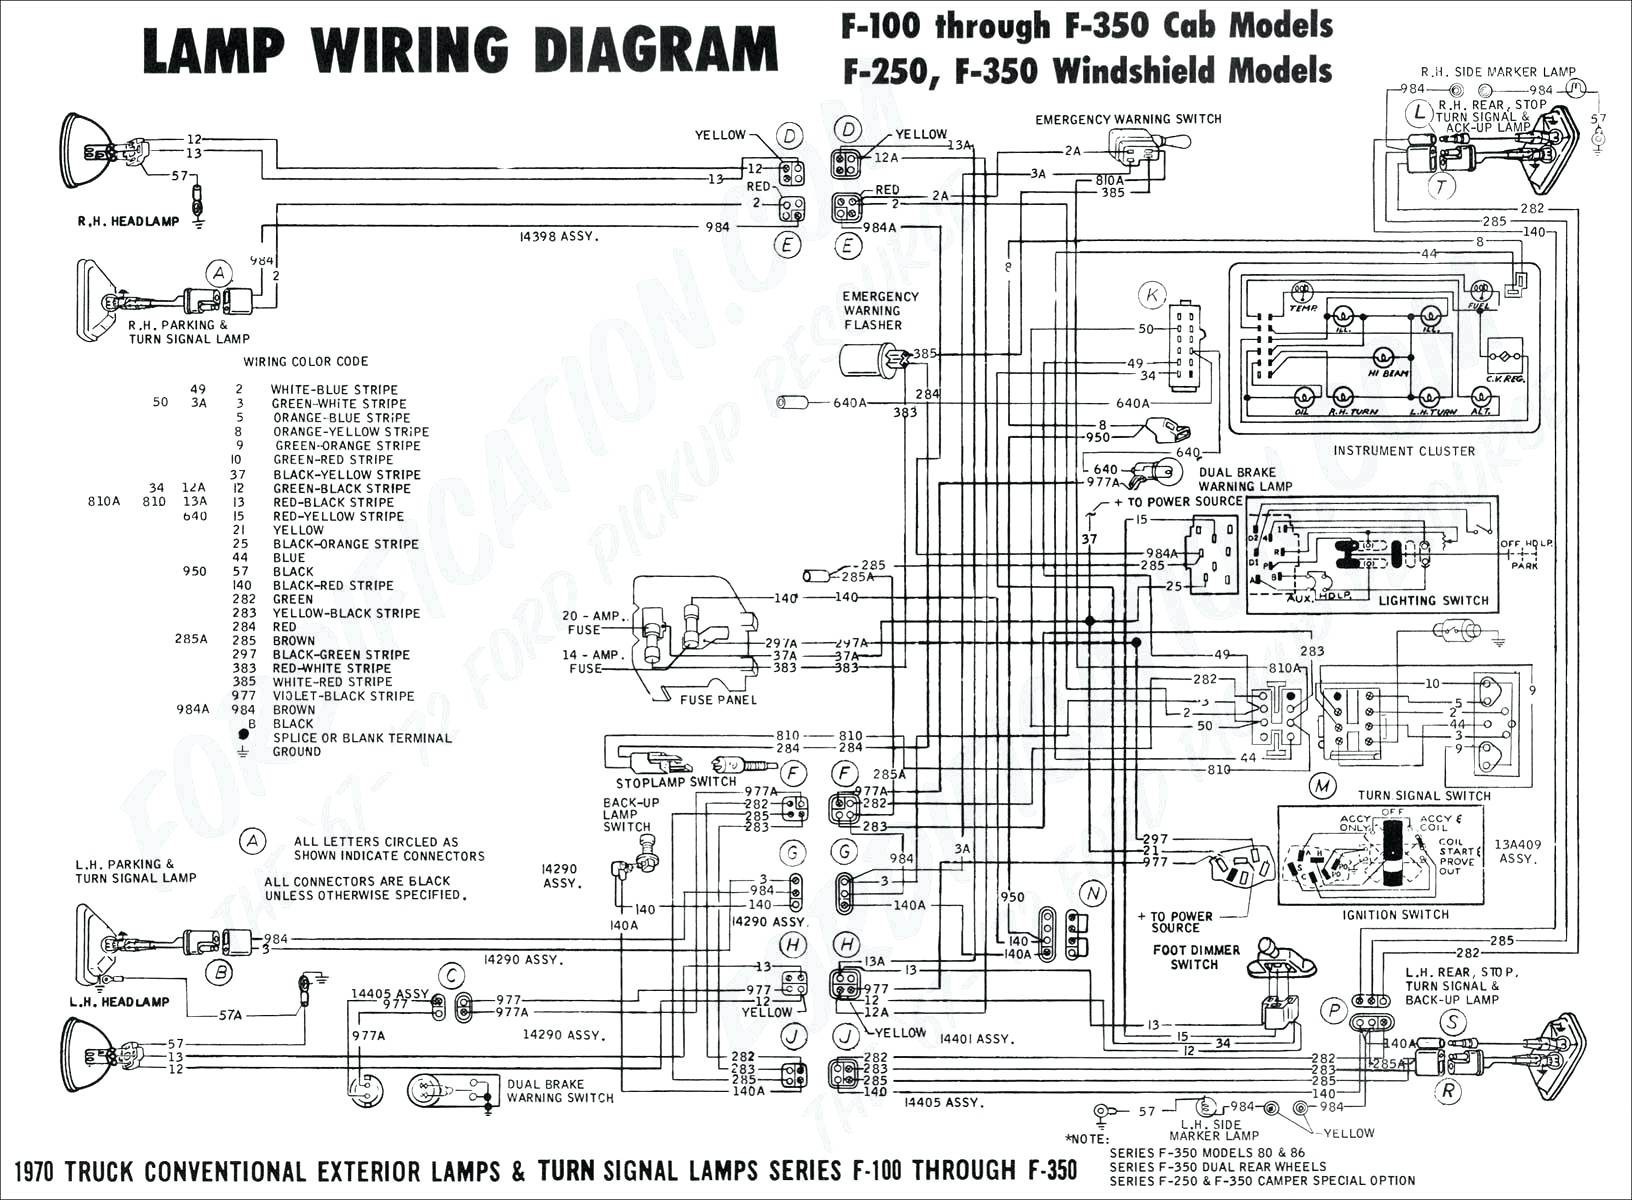 2003 Chevy Impala Engine Diagram 1996 Chevy Trailer Wiring Diagram Premium Wiring Diagram Of 2003 Chevy Impala Engine Diagram B4cdc 73 Gmc Wiring Harness